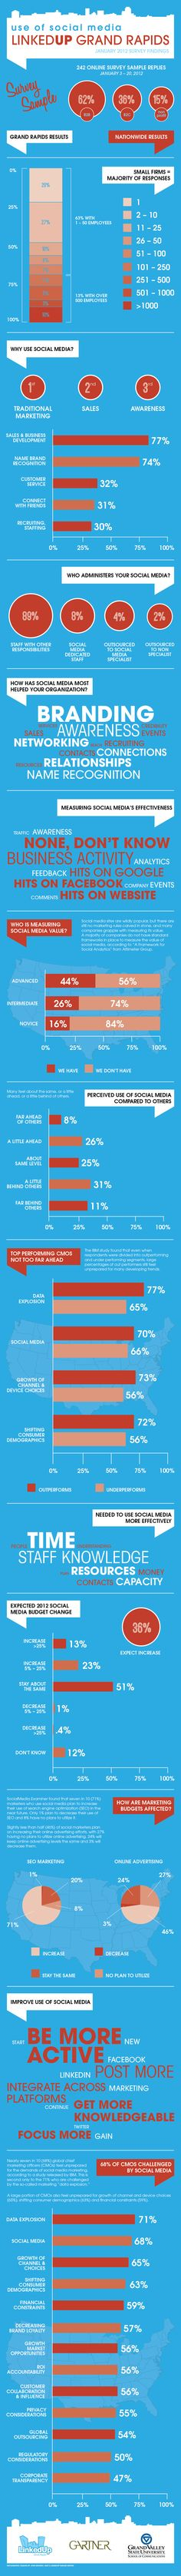 Data from the LinkedUp Grand Rapids survey of social media use by West MI companies. Thanks to Josh Mokma for terrific graphic design work on the infographic!